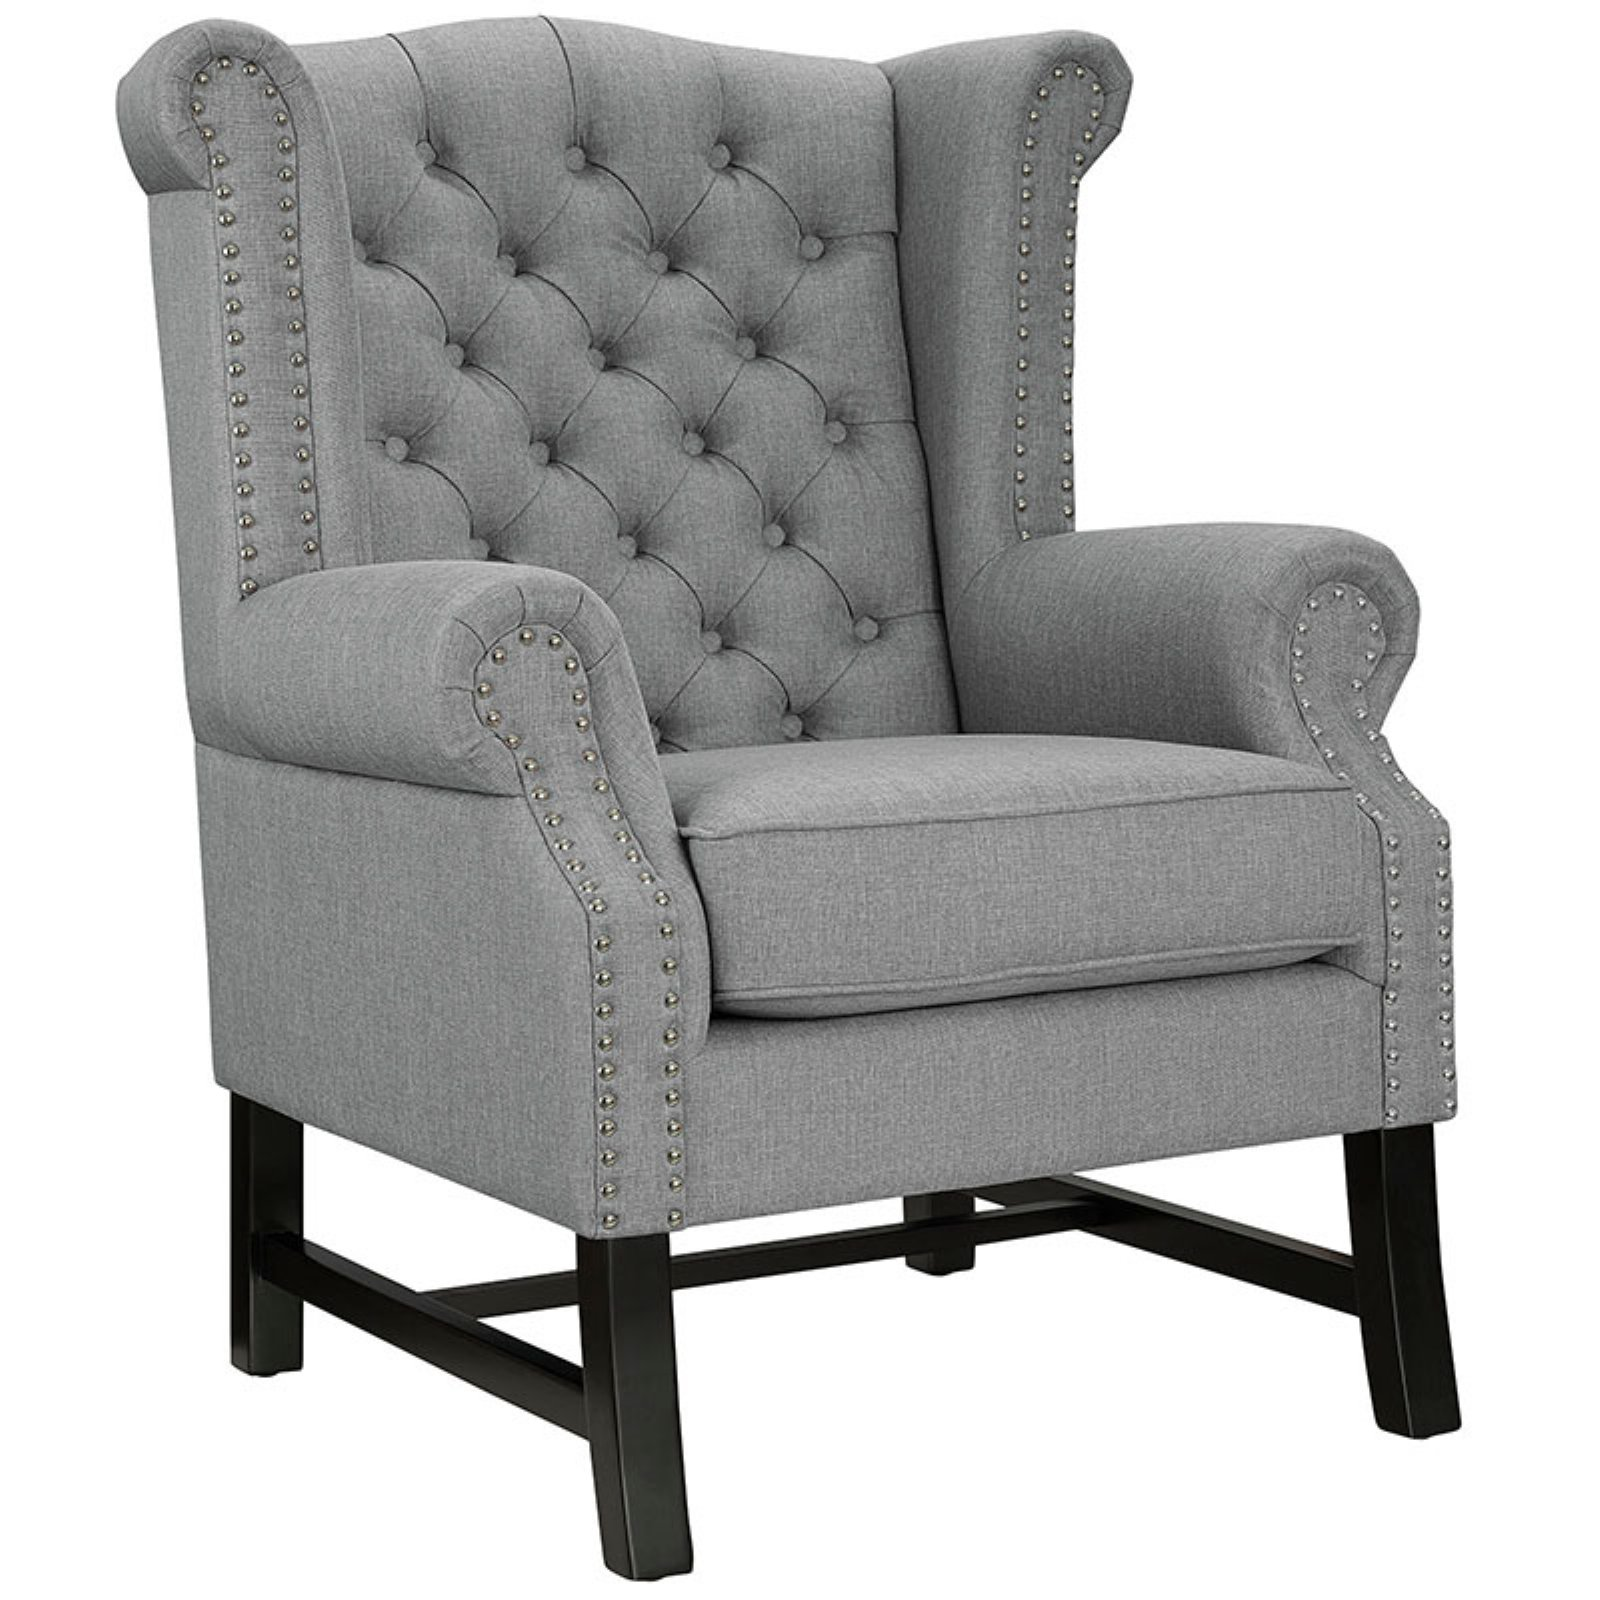 Modway Steer Arm Chair